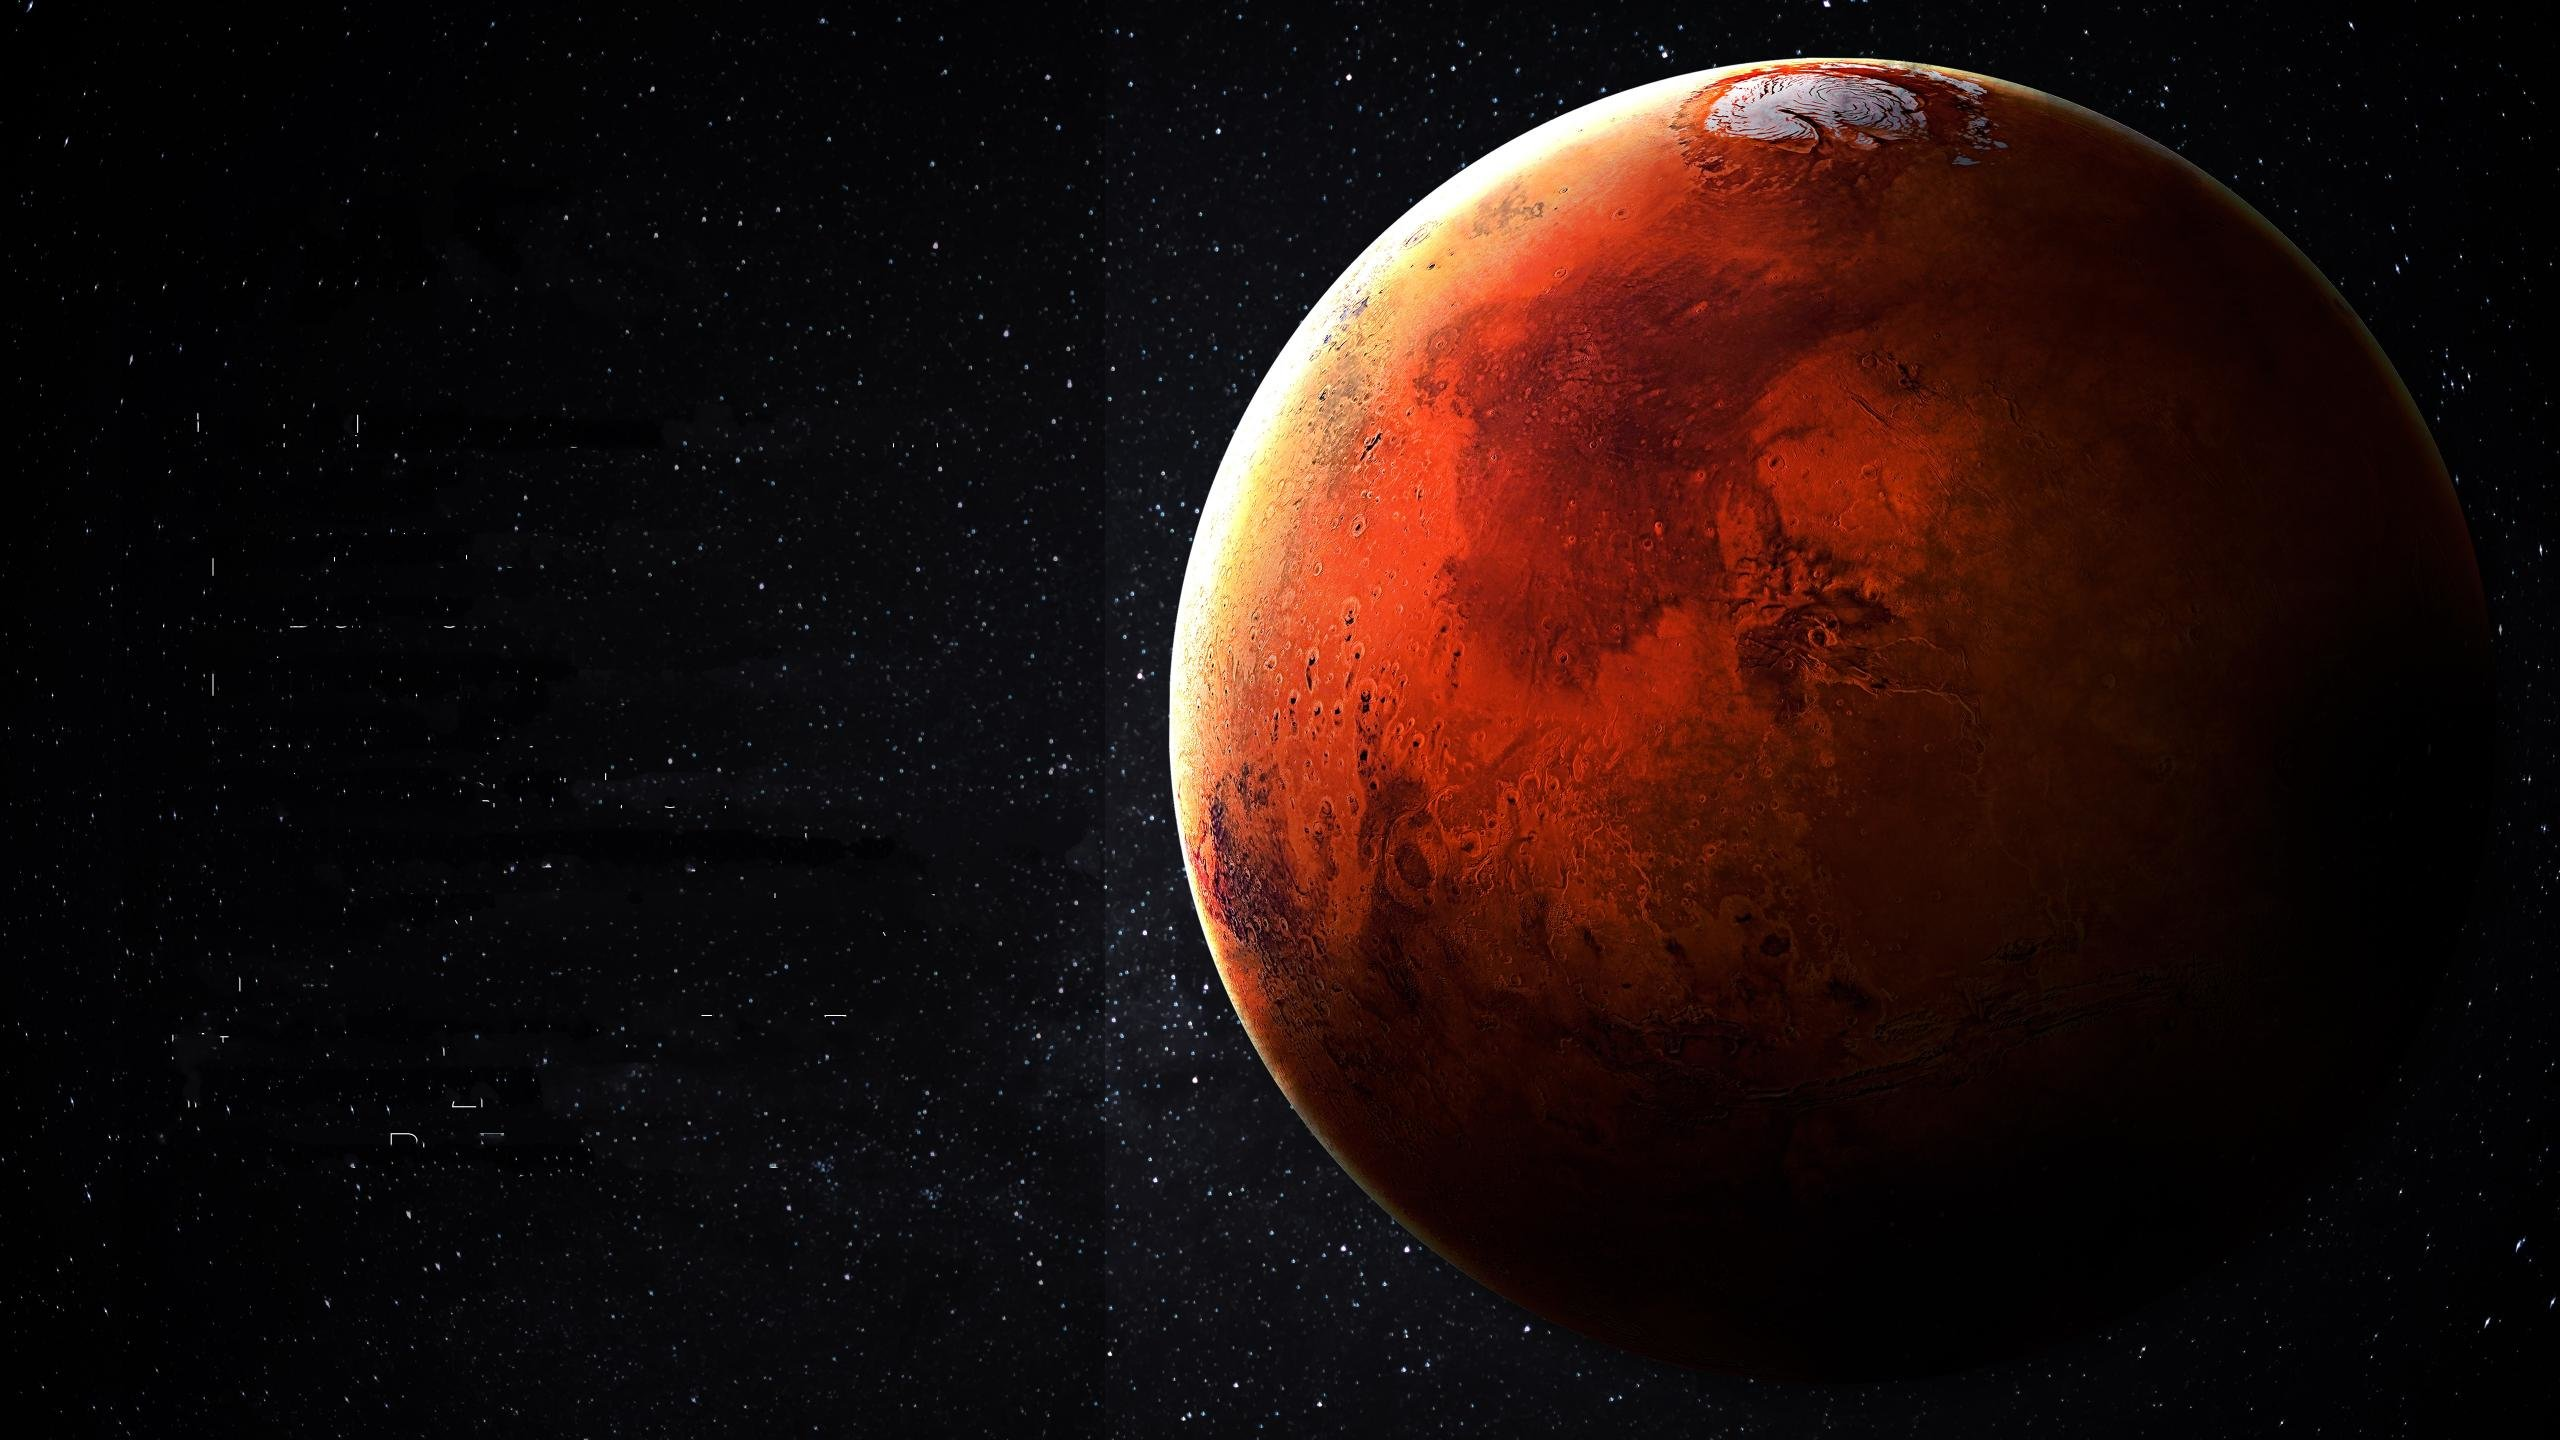 Free Mars high quality wallpaper ID:118553 for hd 2560x1440 desktop